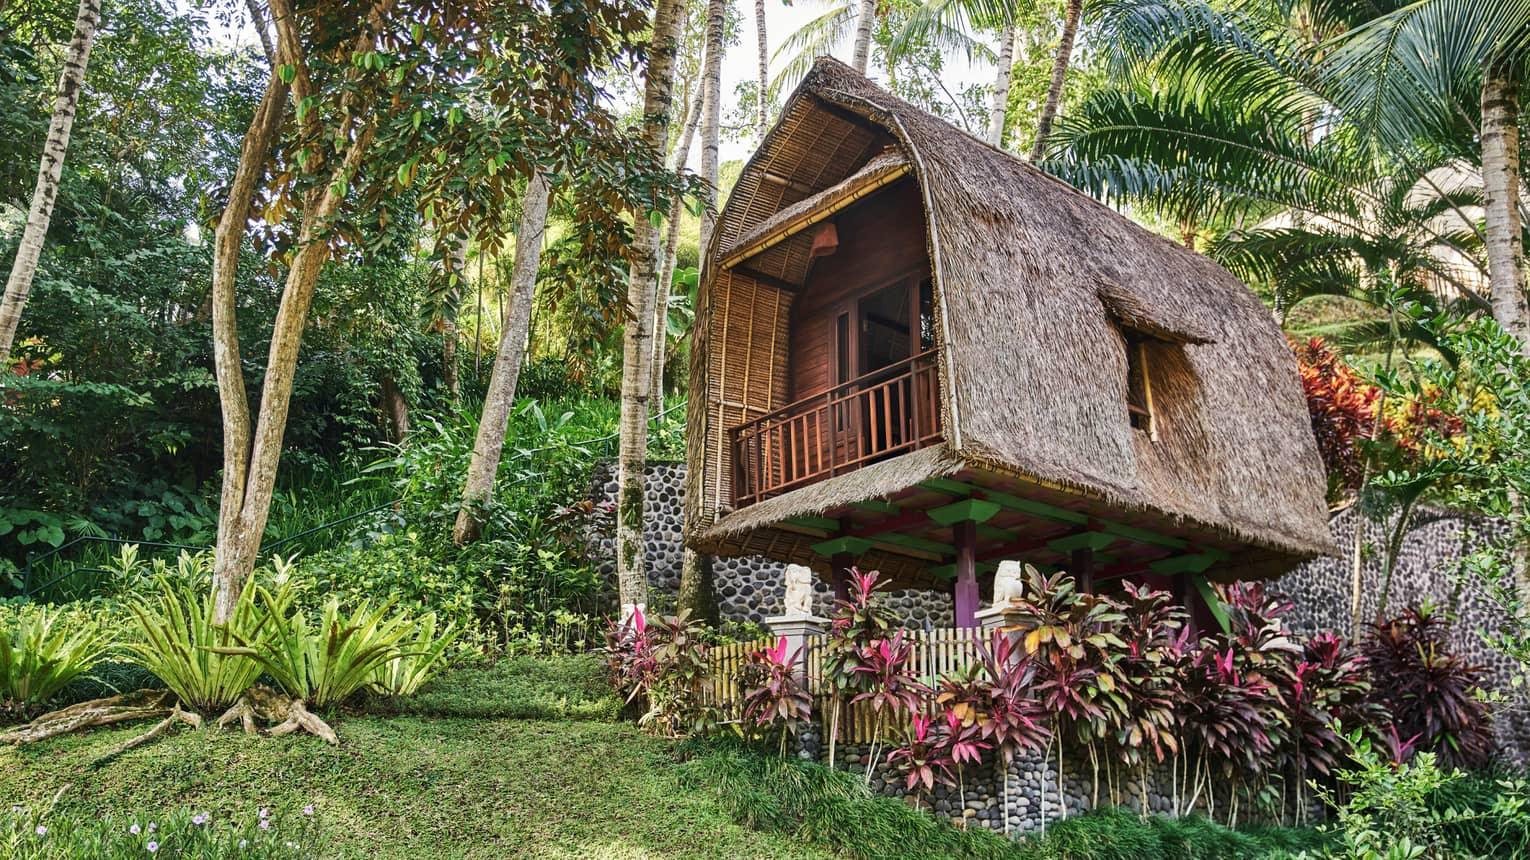 Exterior view of rice barn tree house with curved, A-frame structure, thatched roof, surrounded by tropical foliage